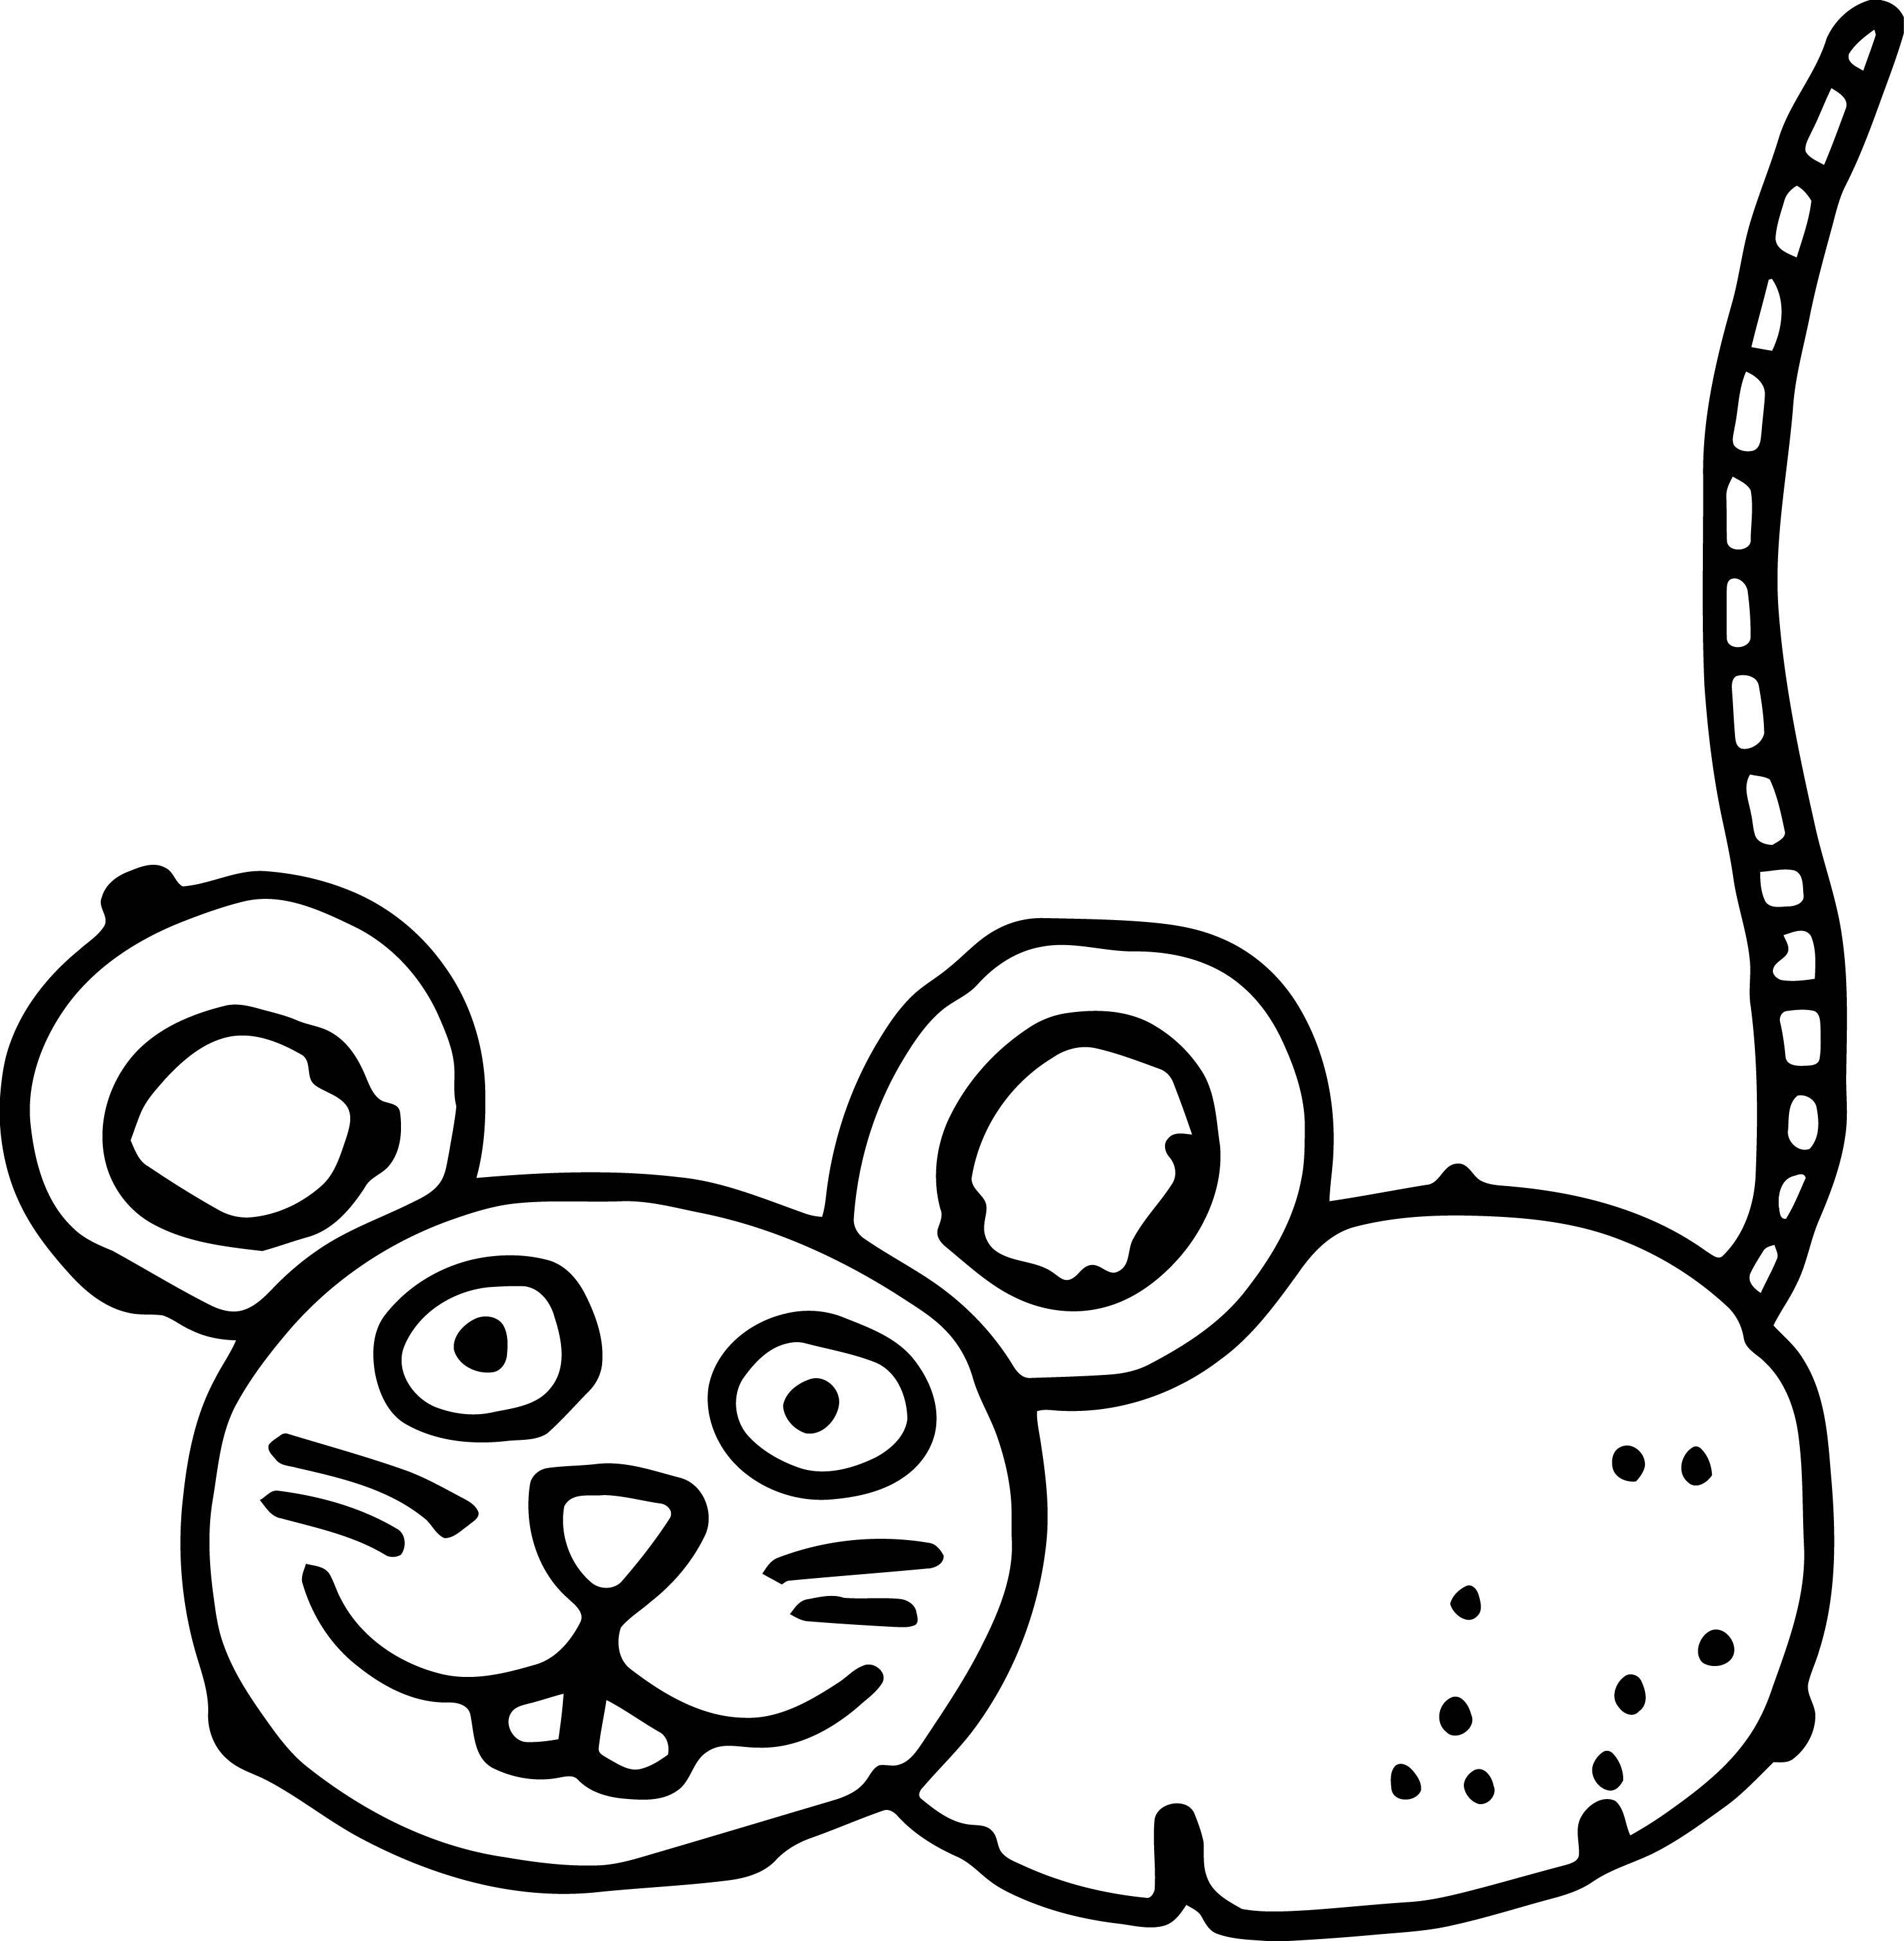 Mouse Jpeg Coloring Page 02